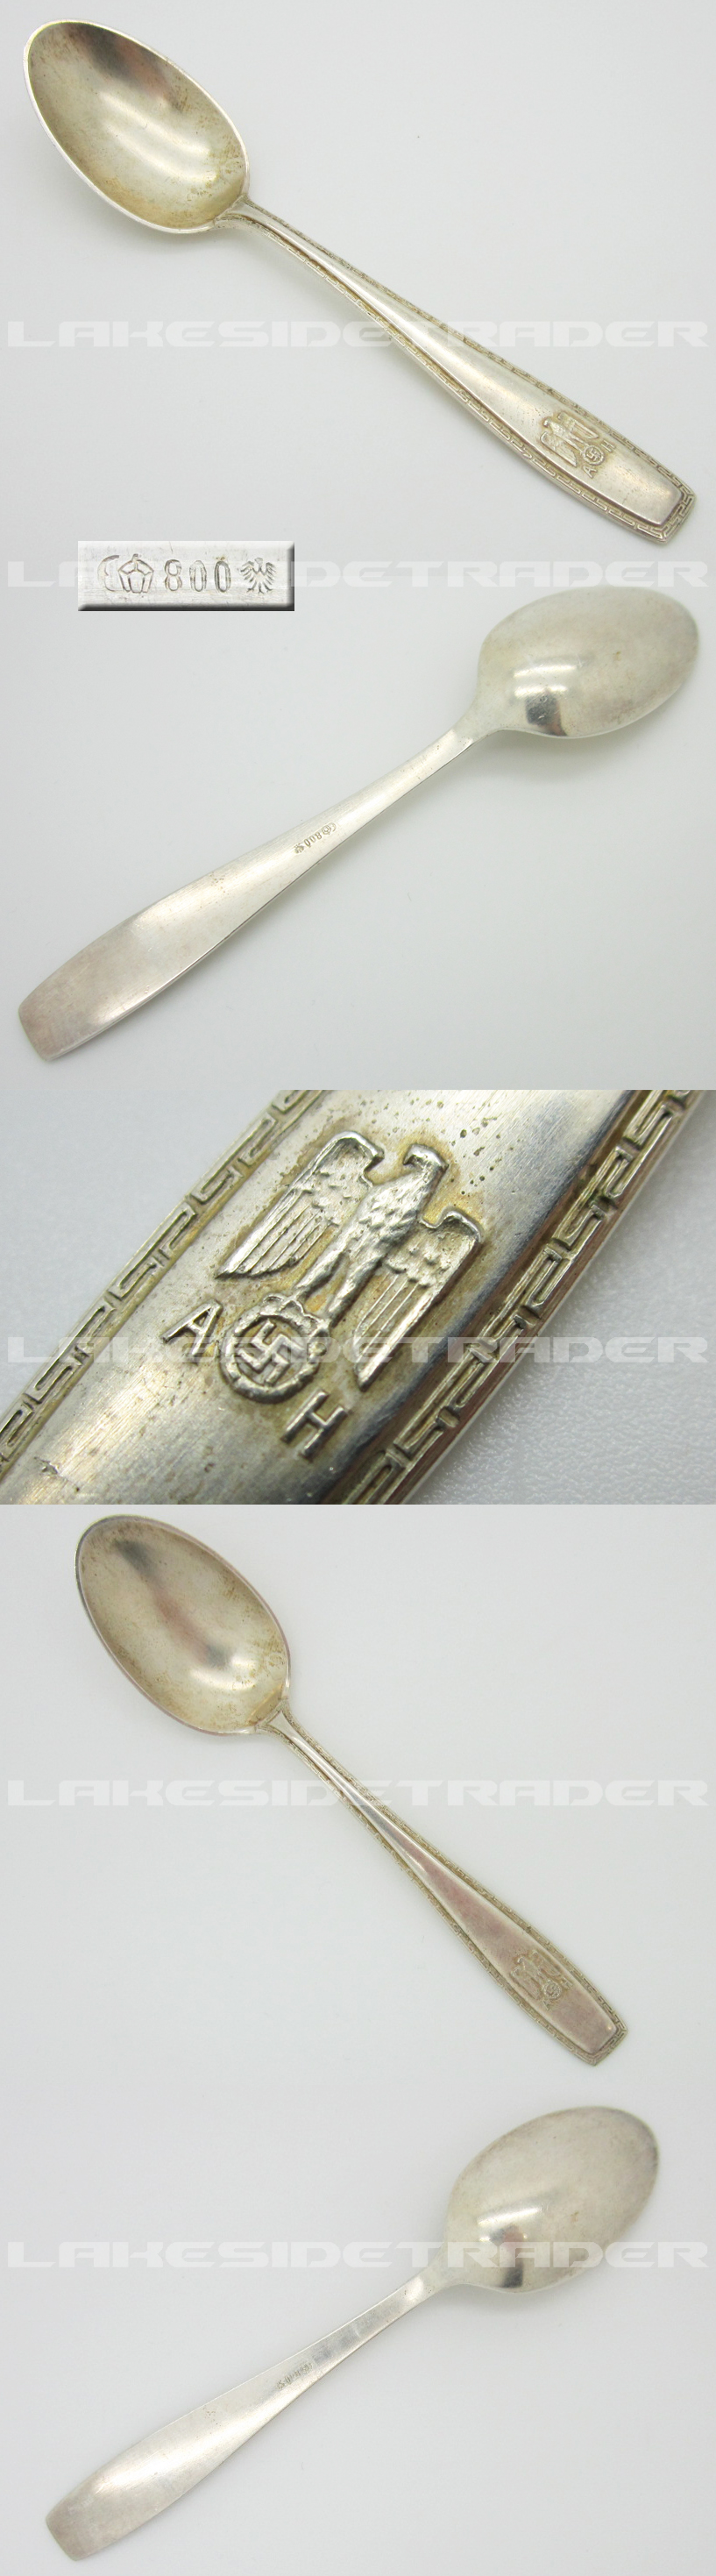 Adolph Hitler Formal Pattern Demitasse Spoon